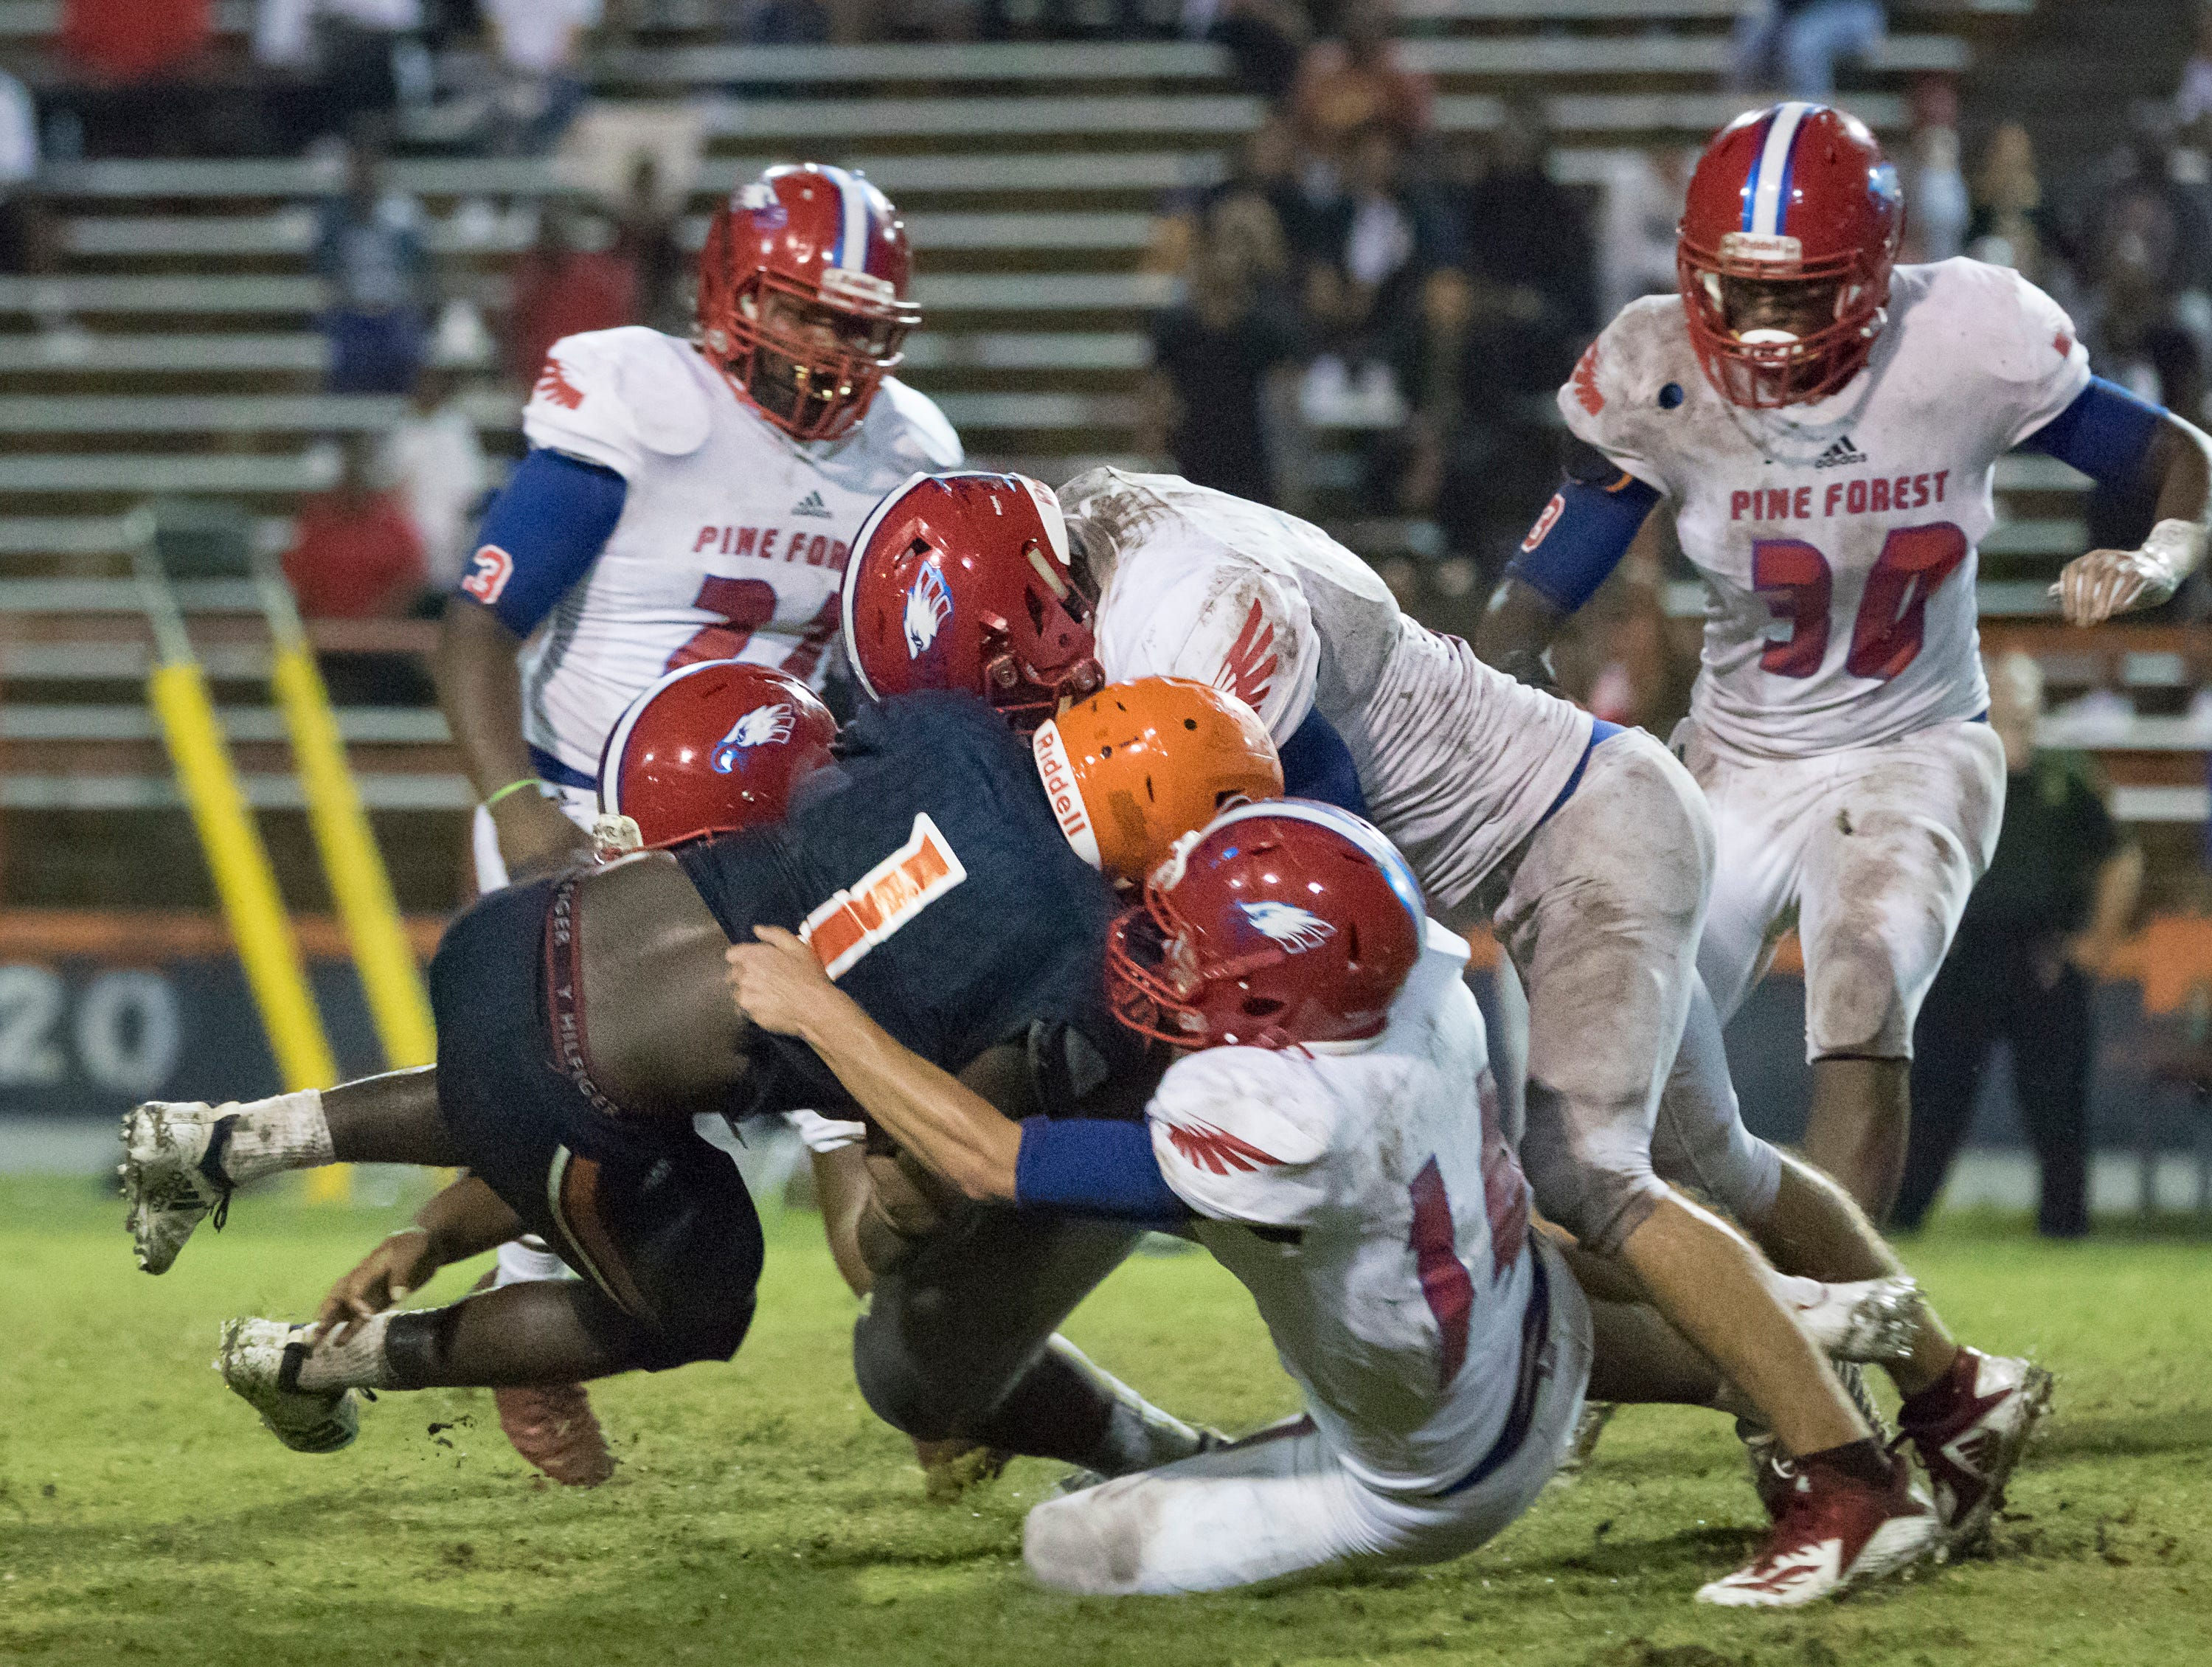 A host of Eagles take down Frank Peasent (1) as the Gators turn over the ball on downs during the Pine Forest vs Escambia football game at Escambia High School in Pensacola on Friday, September 28, 2018.